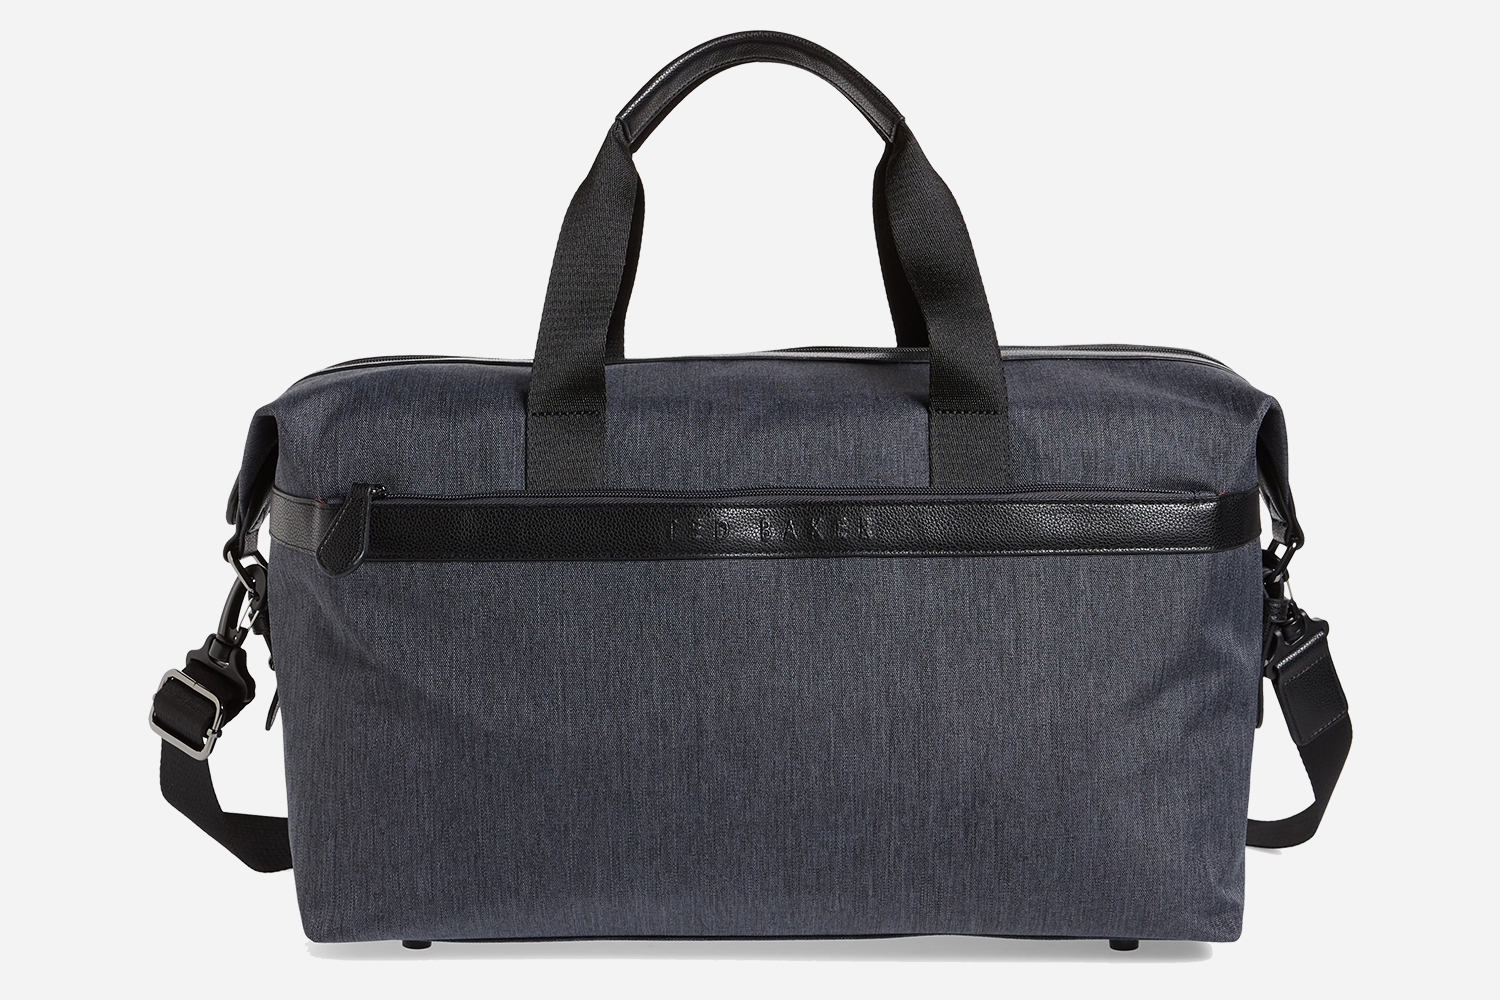 Ted Baker Bags on Sale at Nordstrom